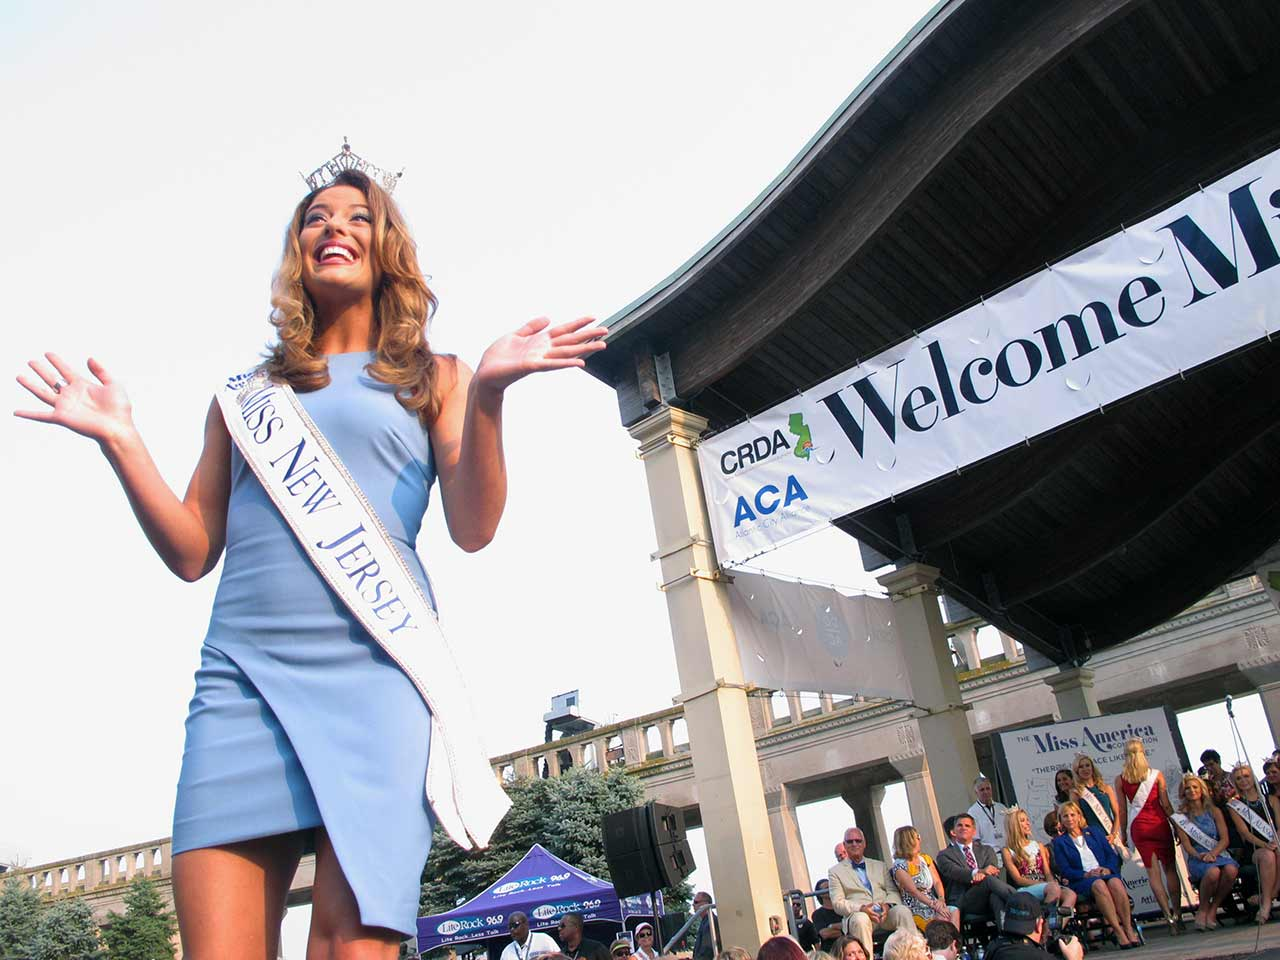 "<div class=""meta image-caption""><div class=""origin-logo origin-image ap""><span>AP</span></div><span class=""caption-text"">Miss New Jersey Lindsey Giannini walks the runway at the traditional Miss America welcome ceremony on the Atlantic City Boardwalk on Tuesday, Sept. 1, 2015. (AP Photo/Wayne Parry)</span></div>"